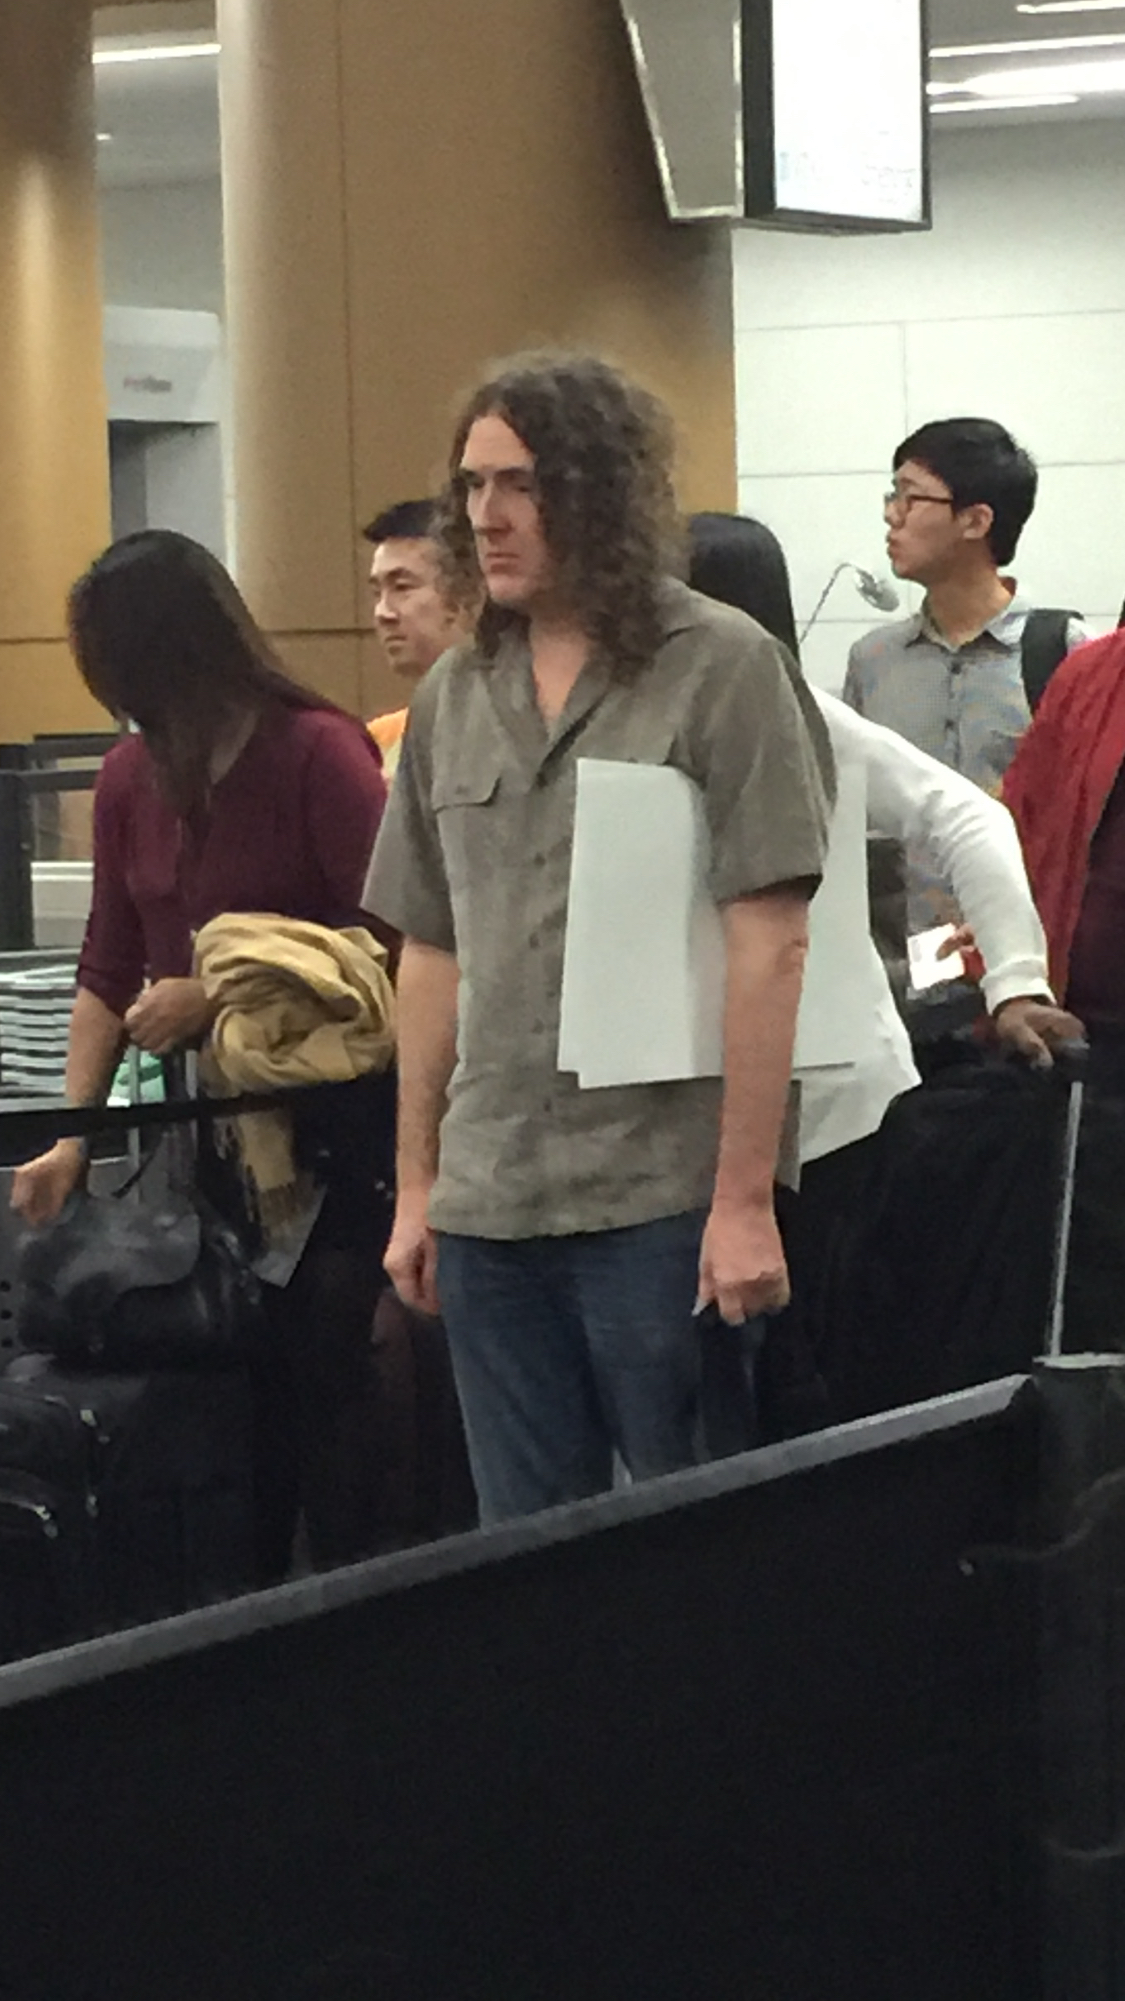 sad weird al in airport security